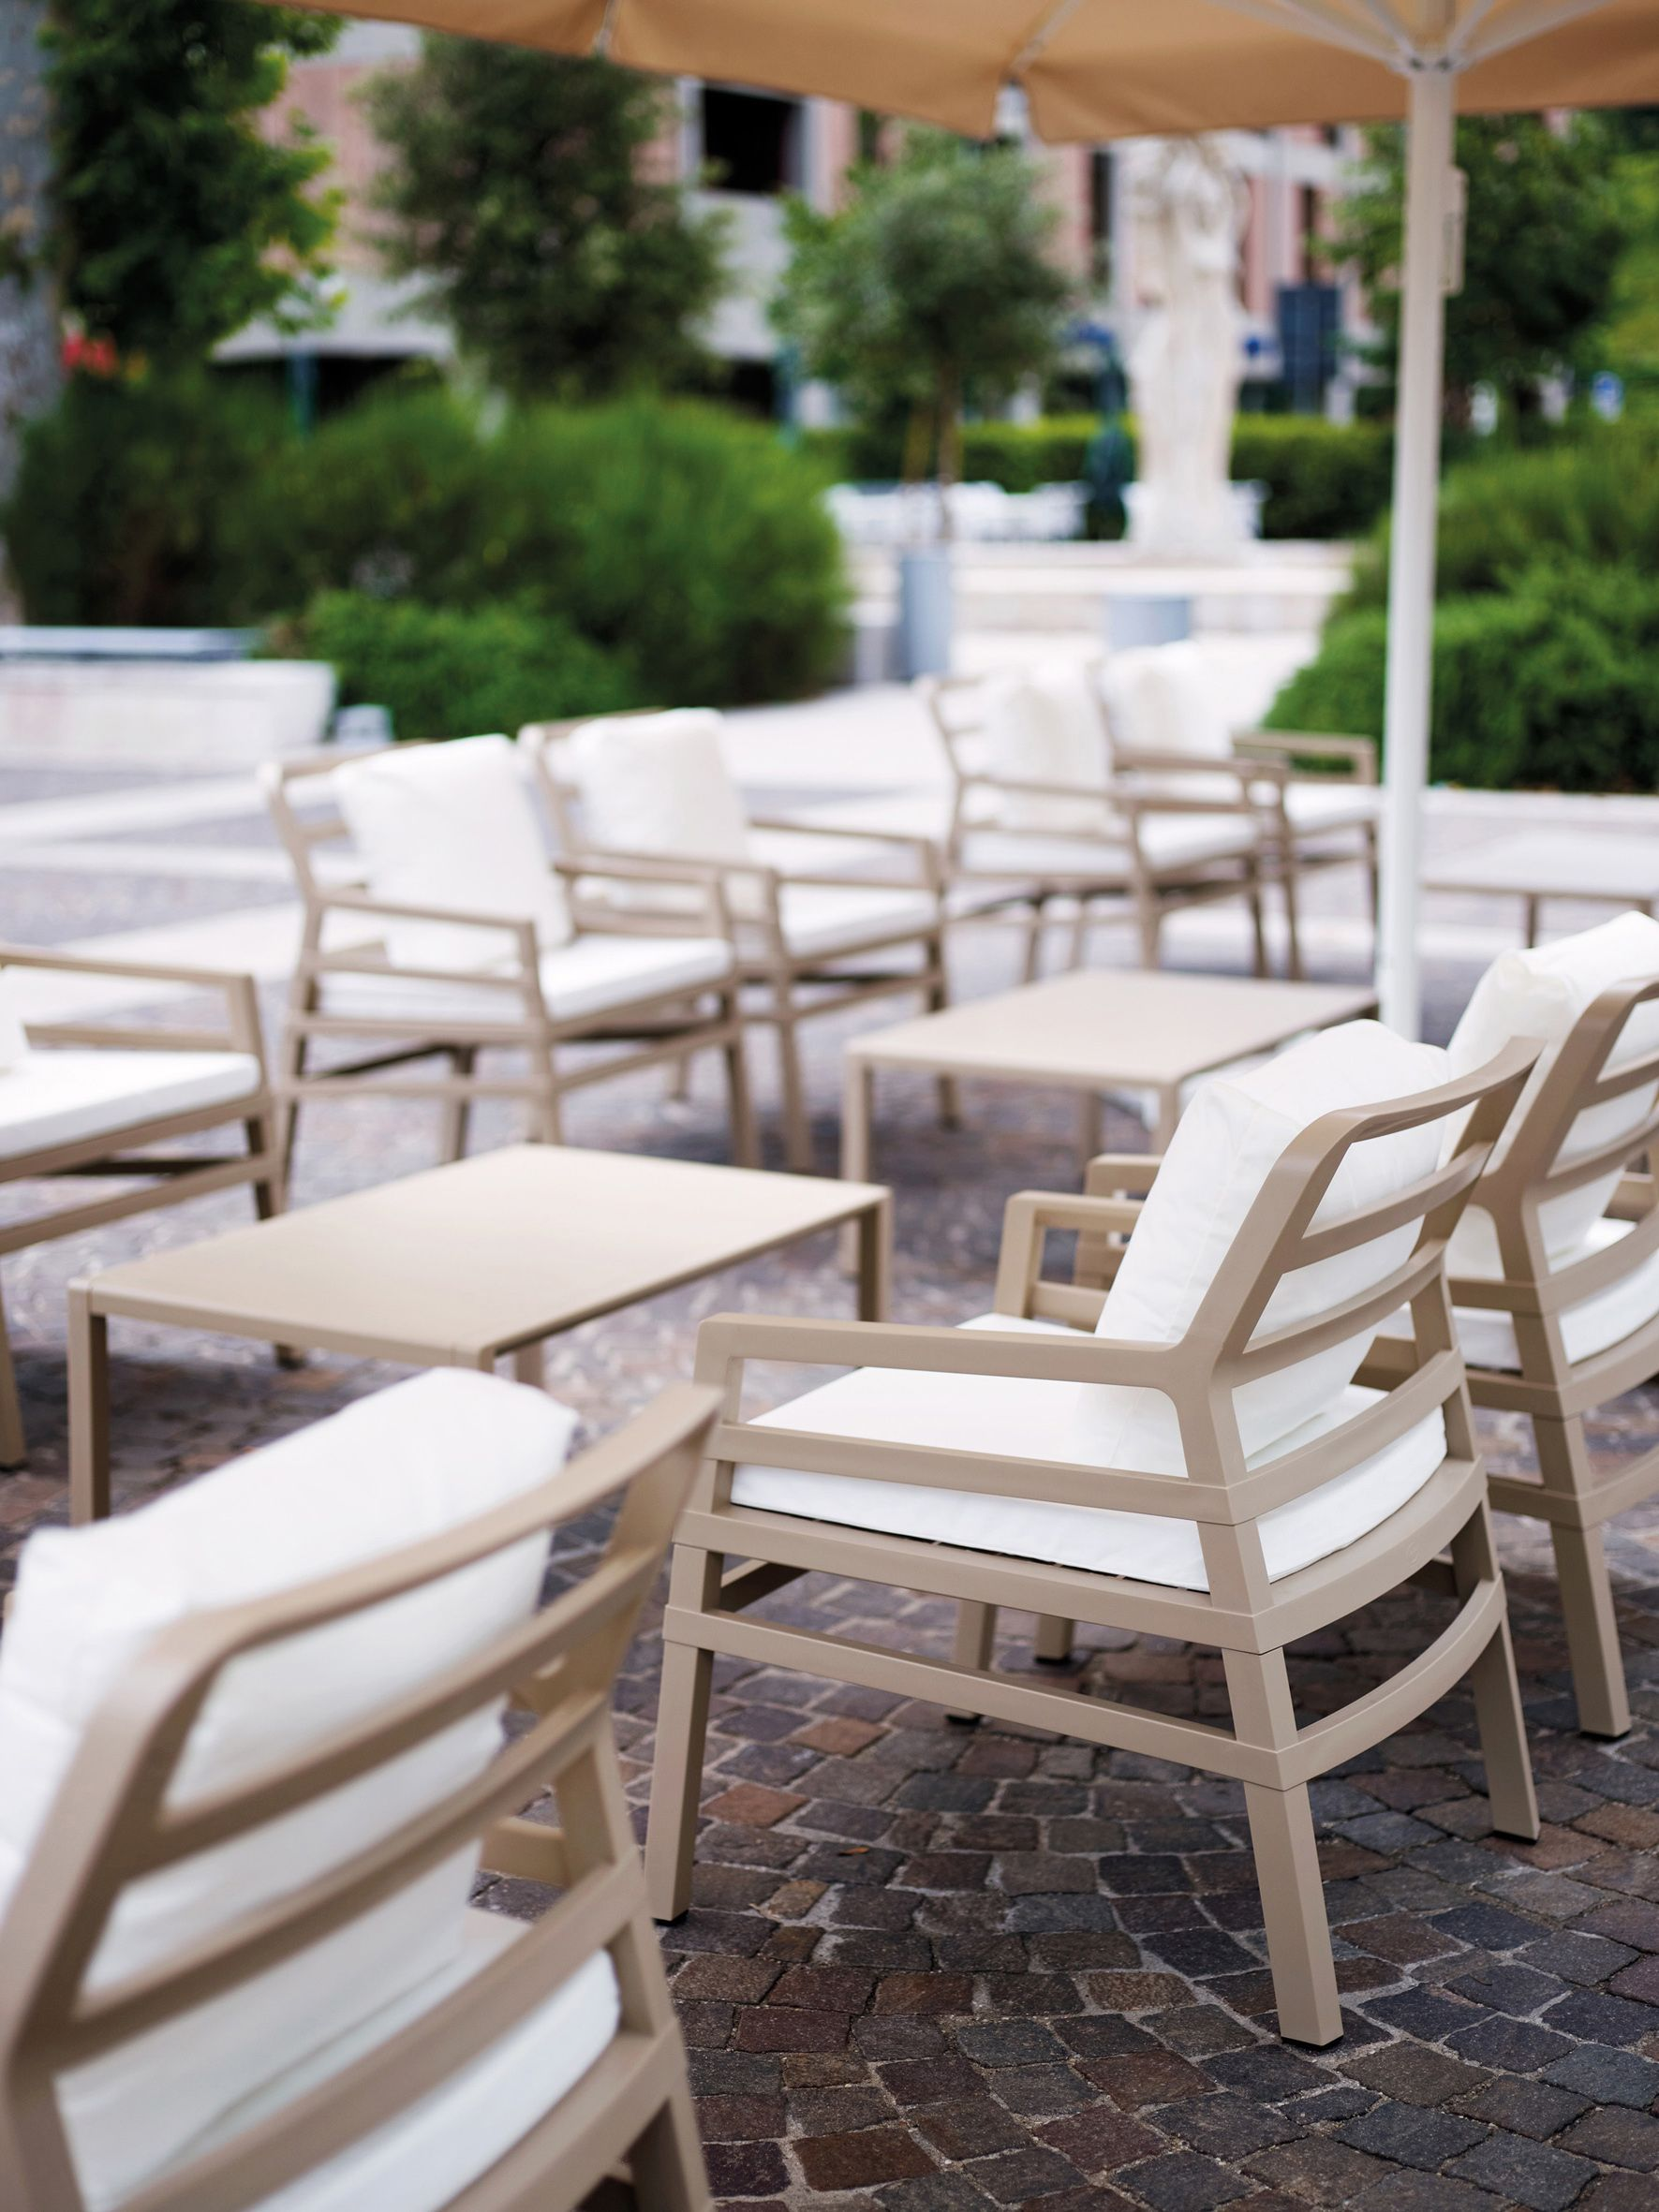 Garden Furniture Colours aria chairnardi - avana with cream cushions more colours